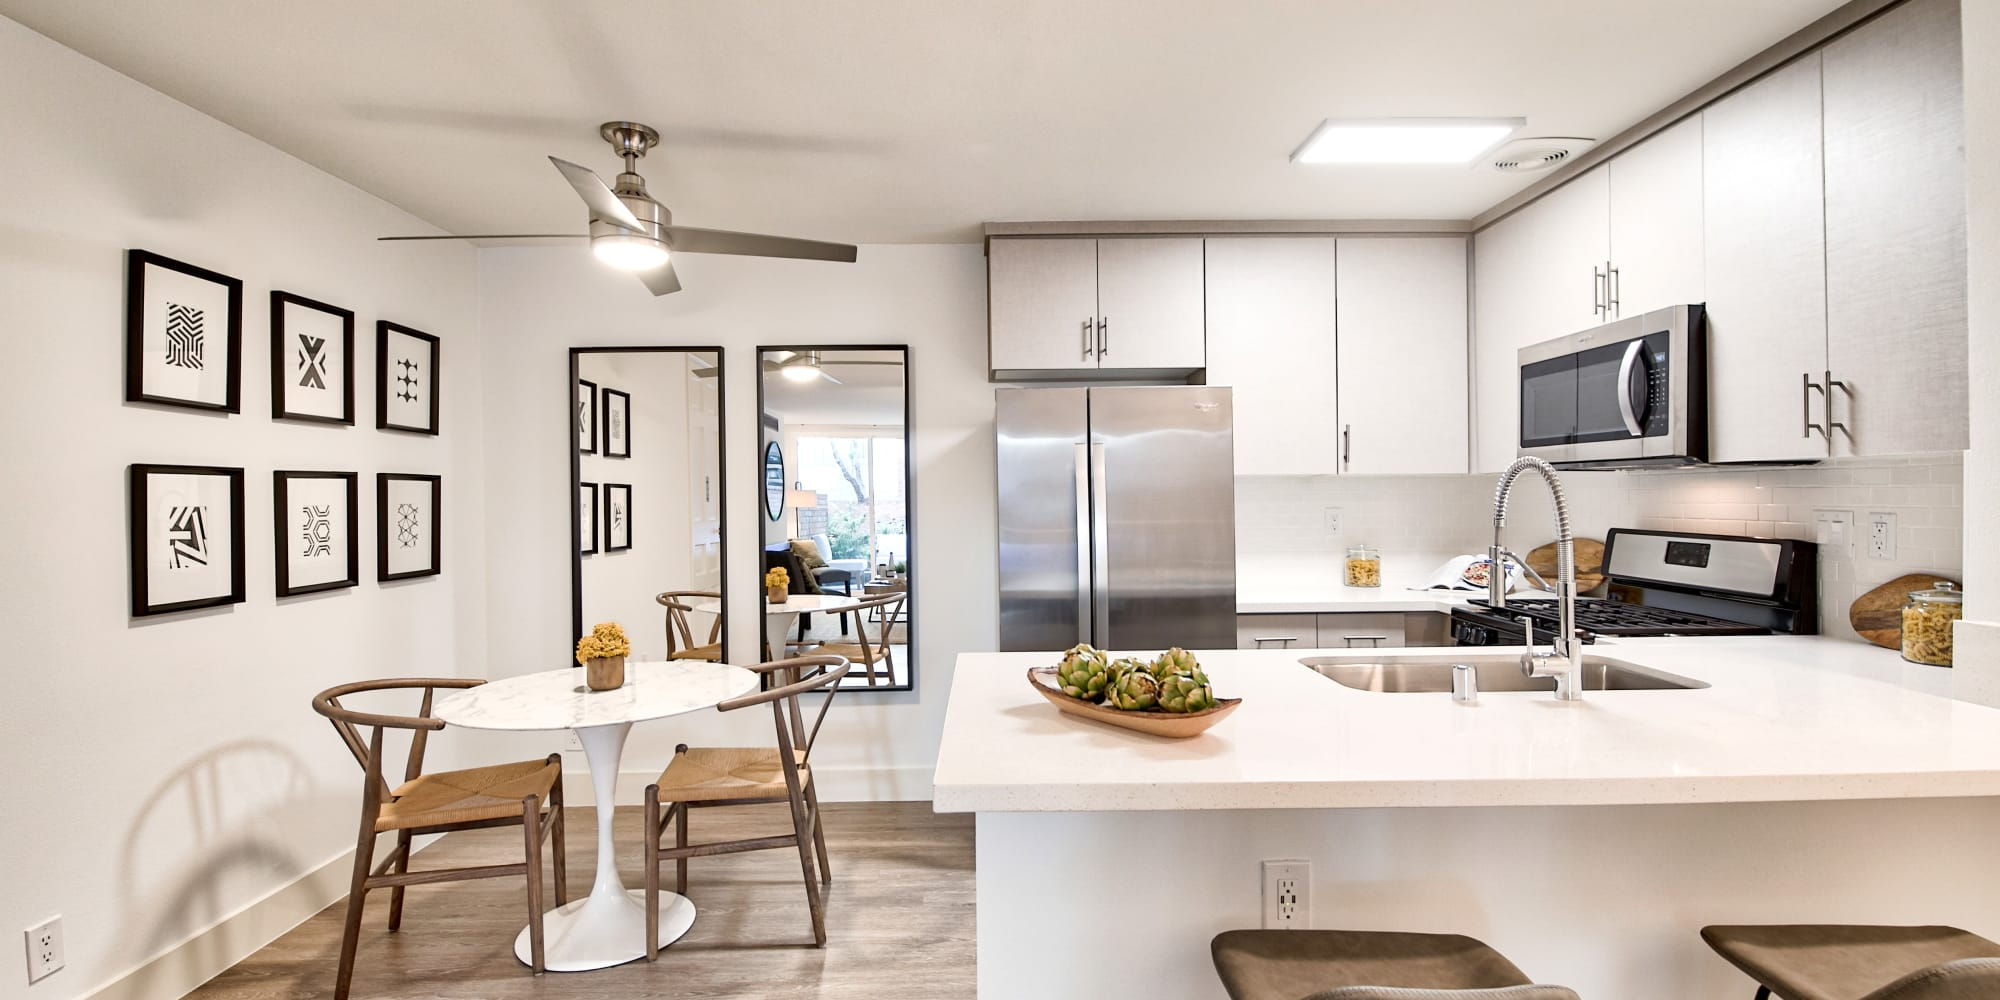 Luxury kitchen with stainless-steel appliances at The Meadows in Culver City, California